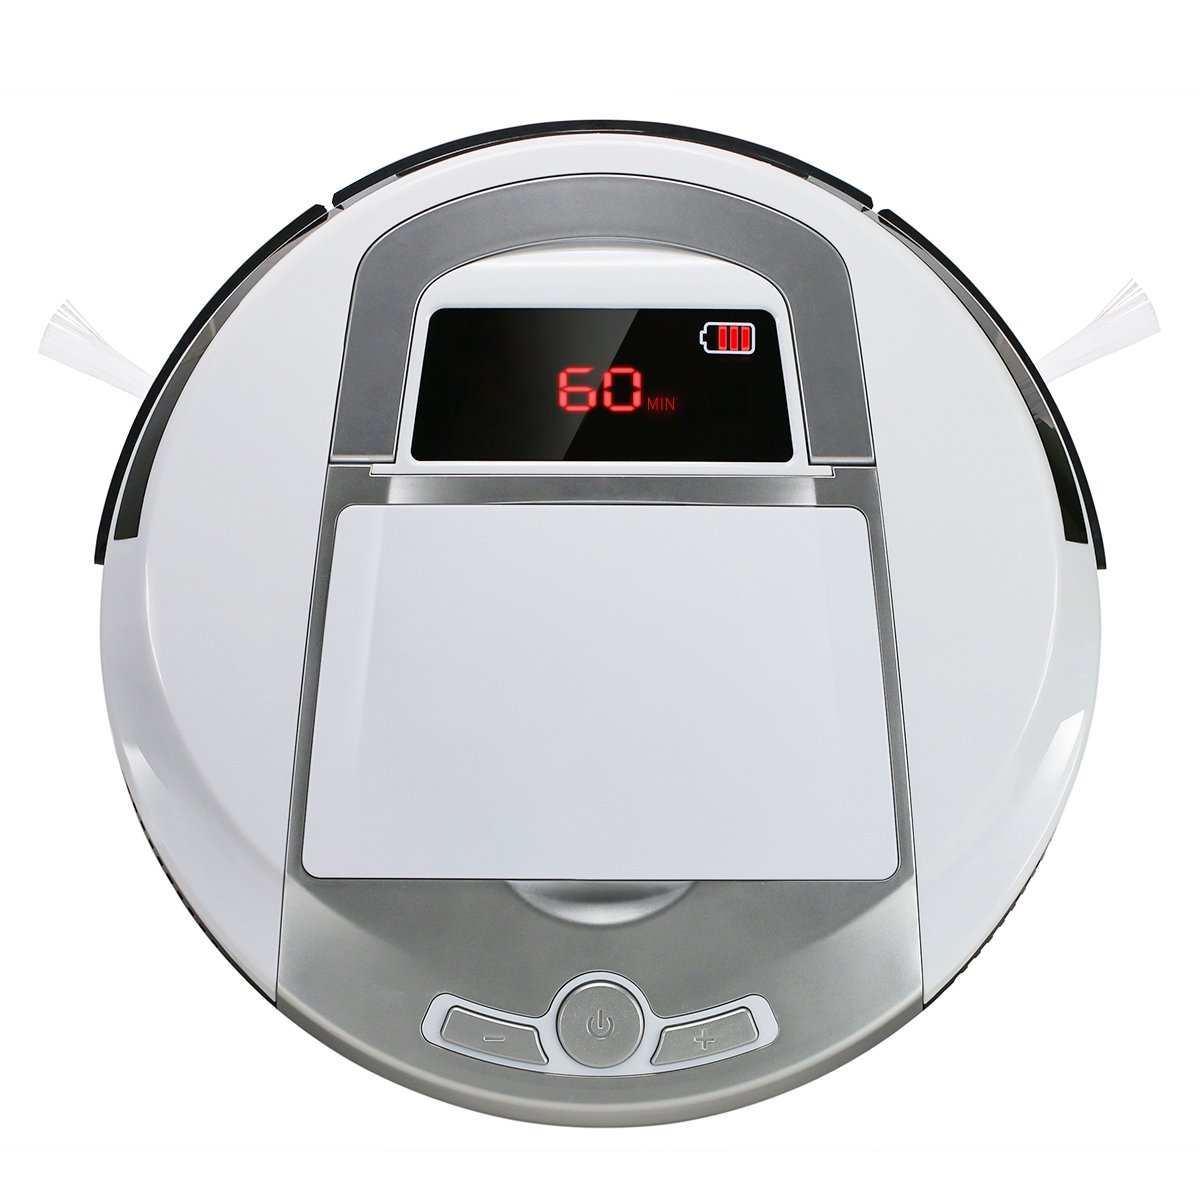 Robotic Vacuum Cleaner, Rechargeable Robotic Vacuum with Strong Suction and HEPA Double Filter, Anti-Cliff and Anti-Bump Sensor Robot for Pet Hair, Fur, Allergens, Thin Carpet, Hardwood and Tile Floor by FORTUNE DRAGON (Image #1)